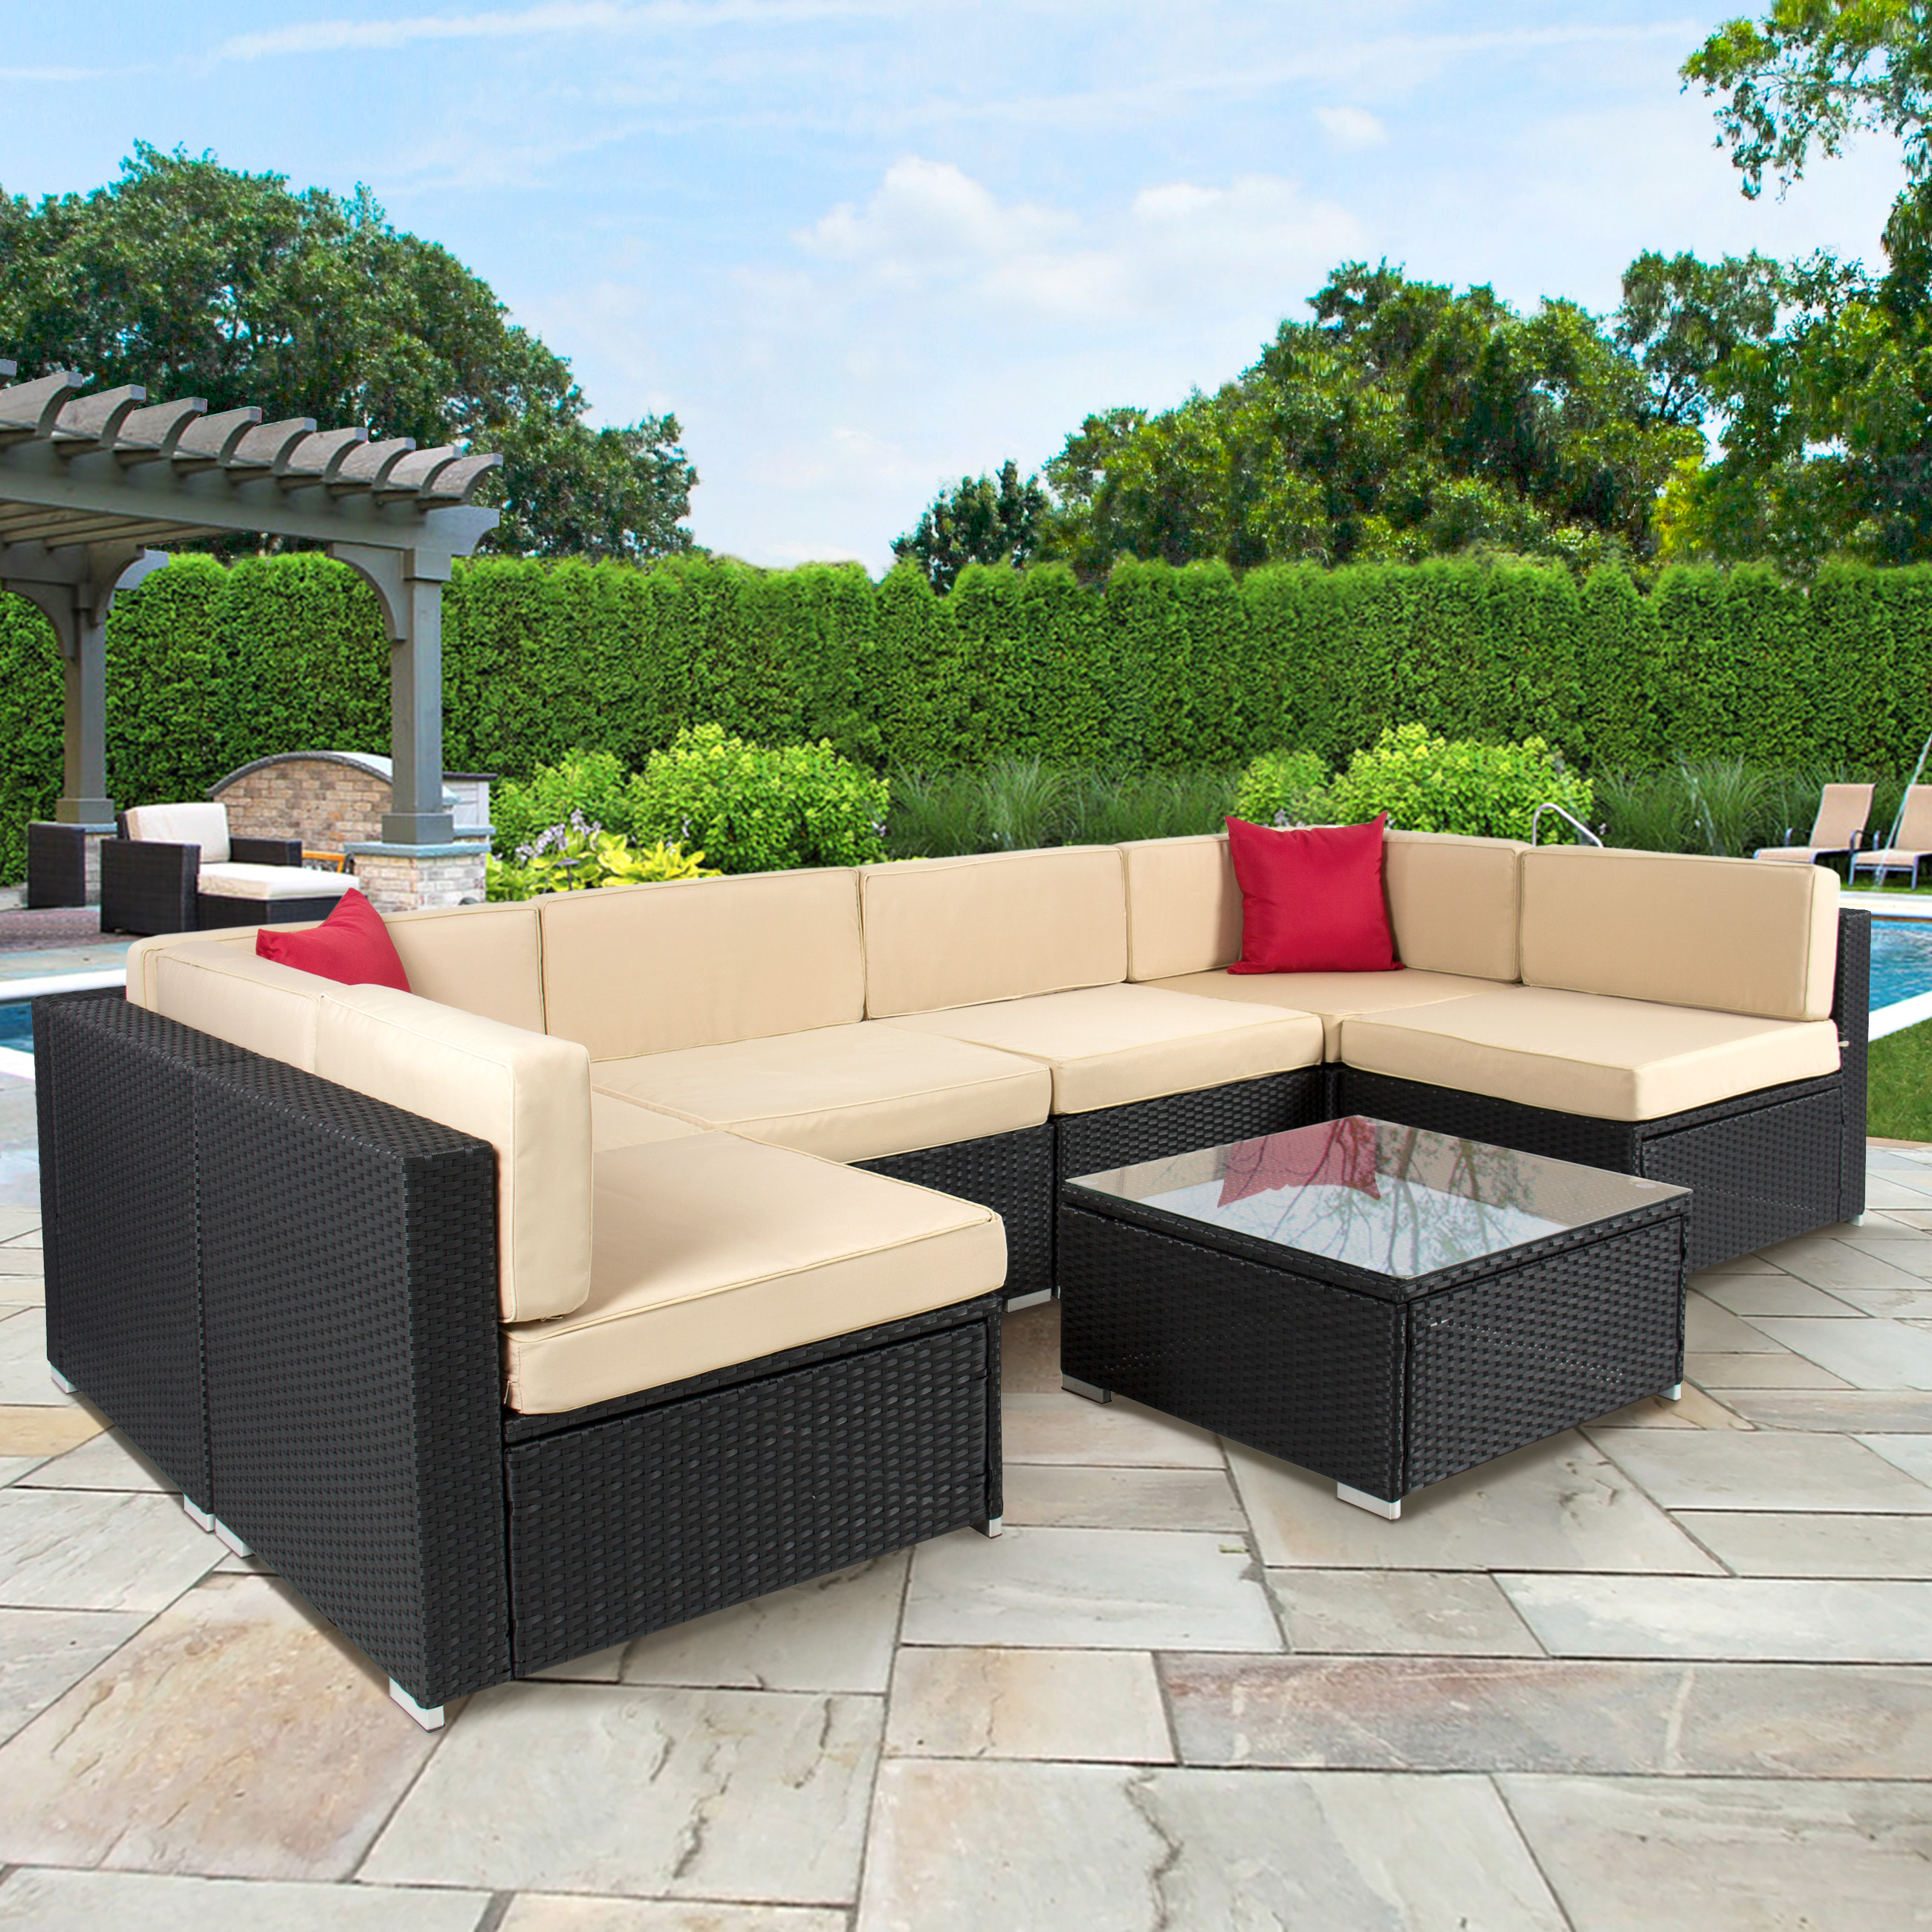 outdoor garden furniture outdoor patio furniture best choice products outdoor garden patio 4pc  cushioned ERSGKMO